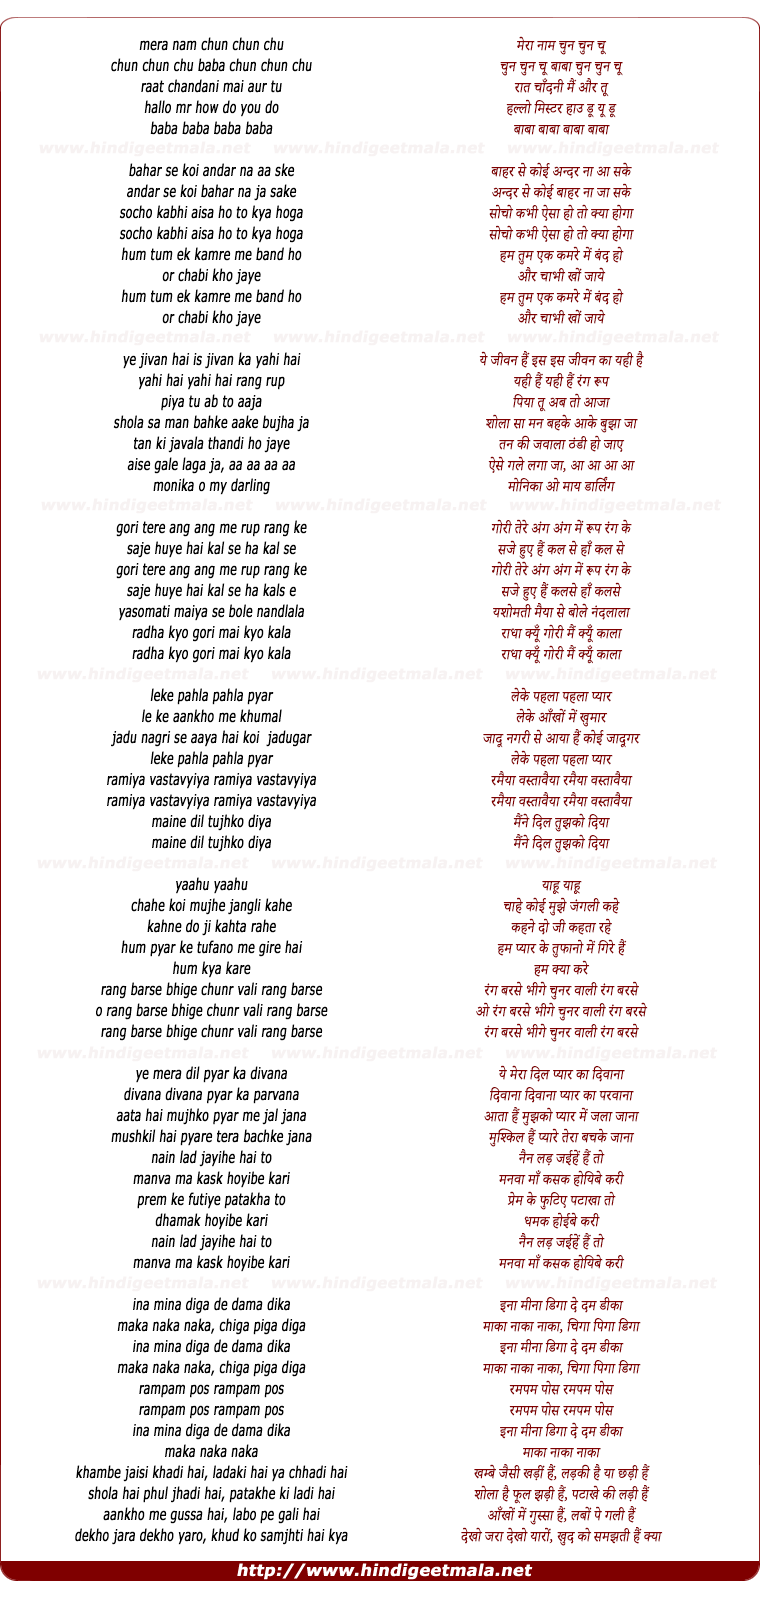 lyrics of song Mera Naam Chun Chun (Antakshari)